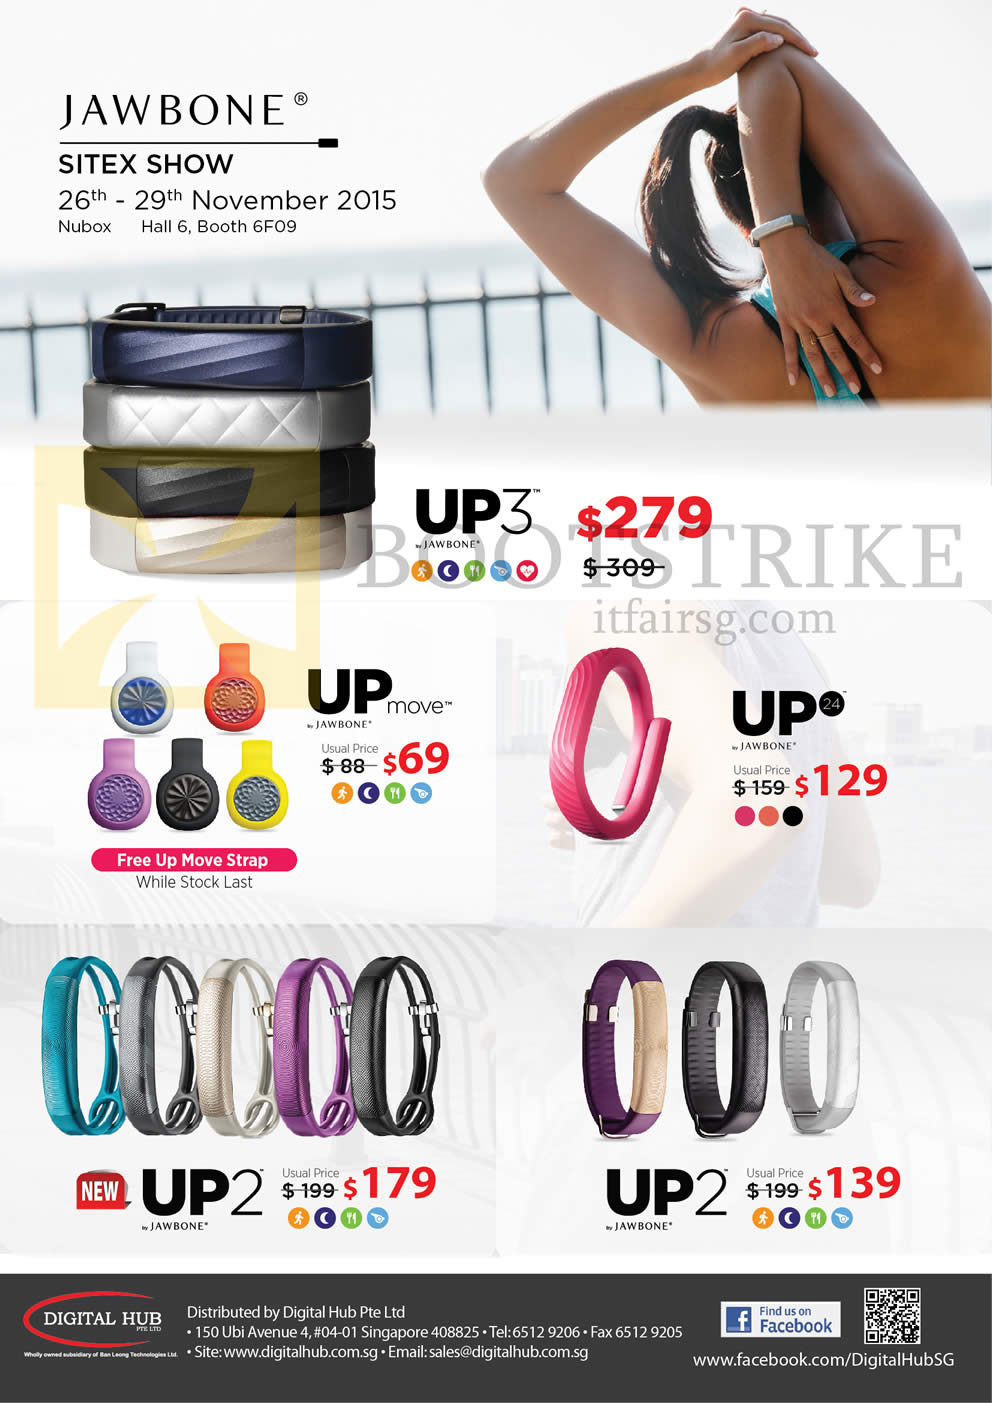 SITEX 2015 price list image brochure of Nubox Jawbone Fitness Trackers UP24, UP2, UP3, UP Move